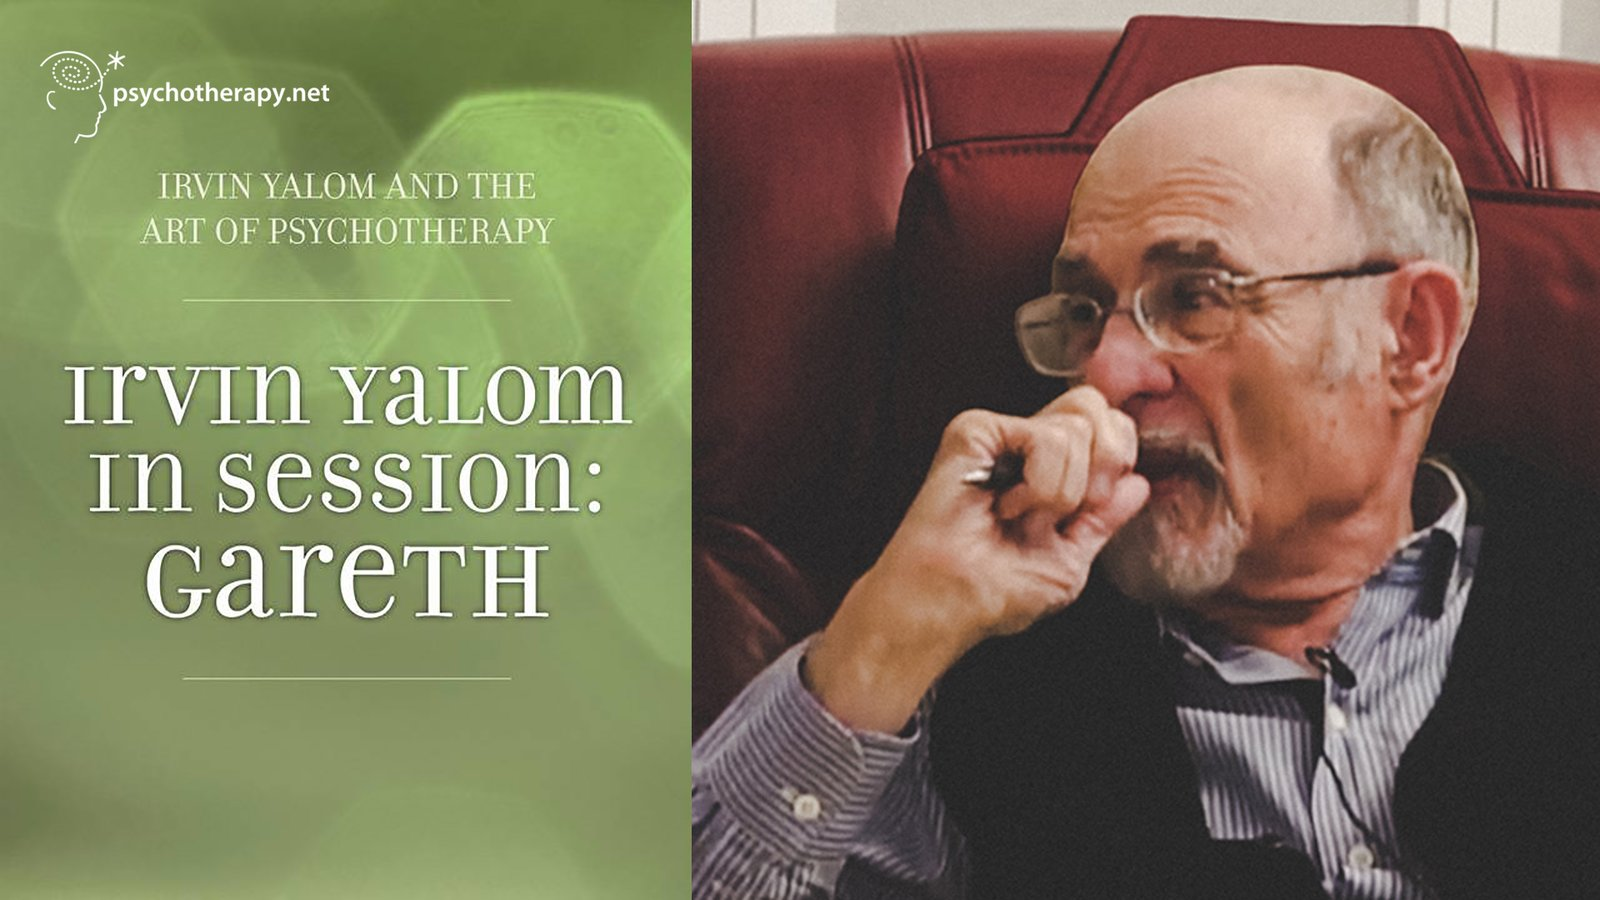 Irvin Yalom in Session: Gareth